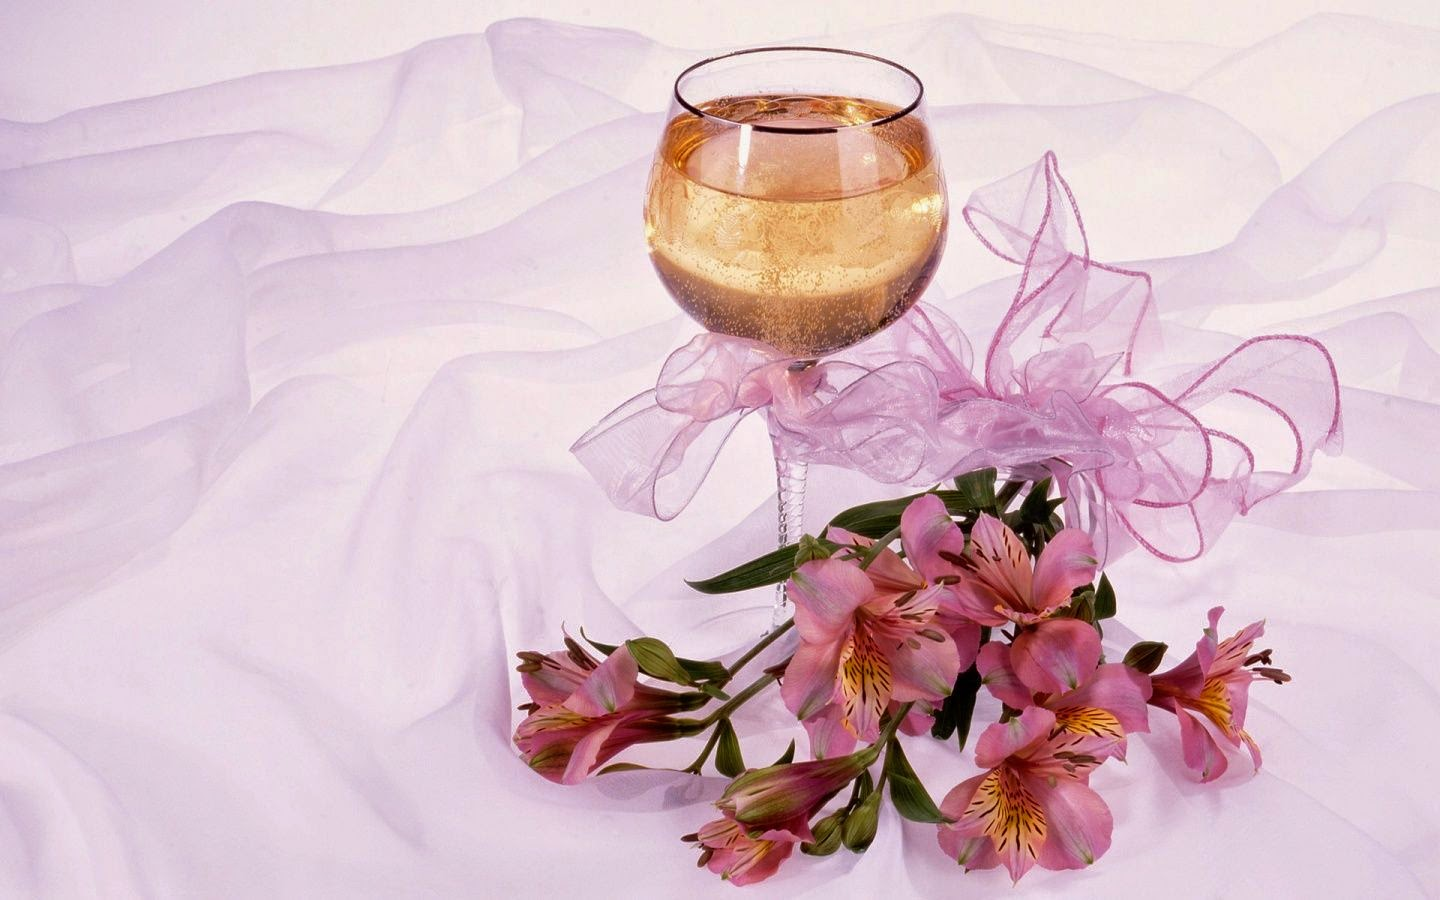 glass-champagne-wallpapers-8180-1440x900